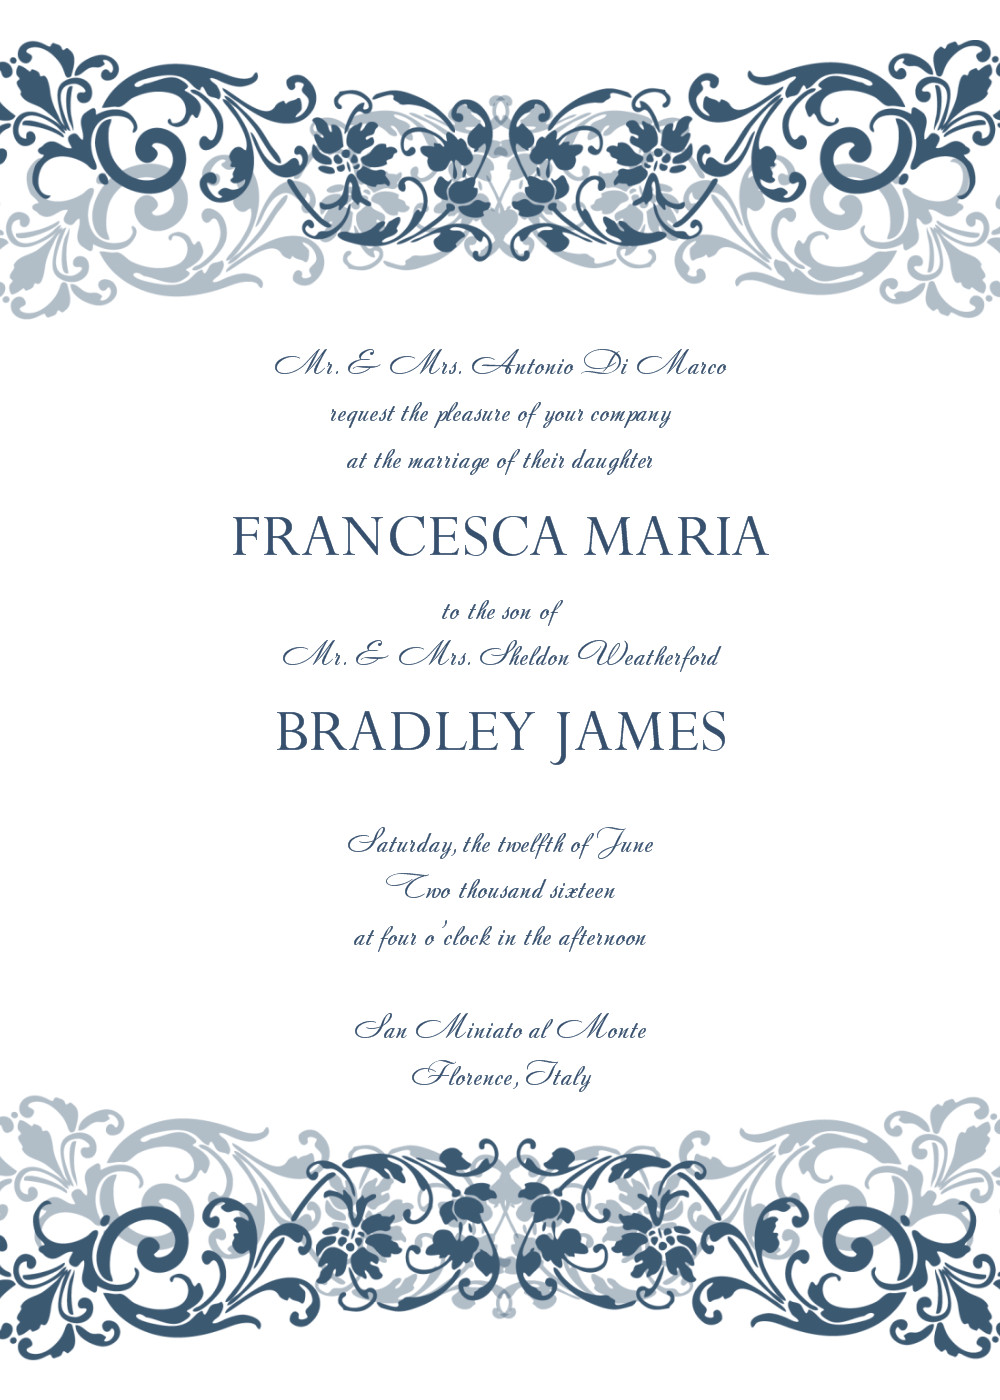 Wedding Invitation Templates Word 8 Free Wedding Invitation Templates Excel Pdf formats